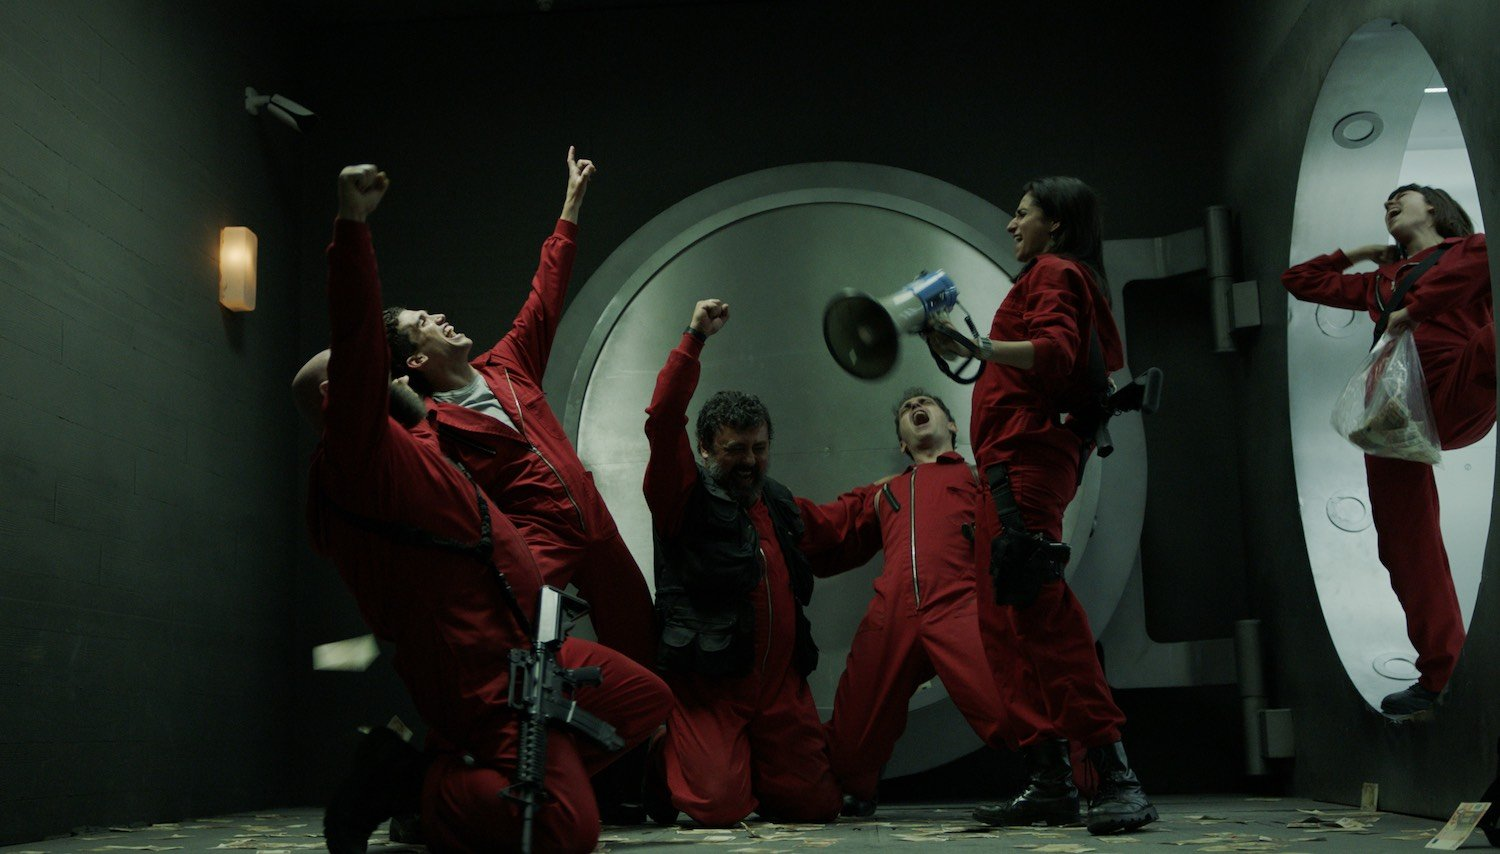 'La casa de papel' tendrá una quinta temporada en Netflix